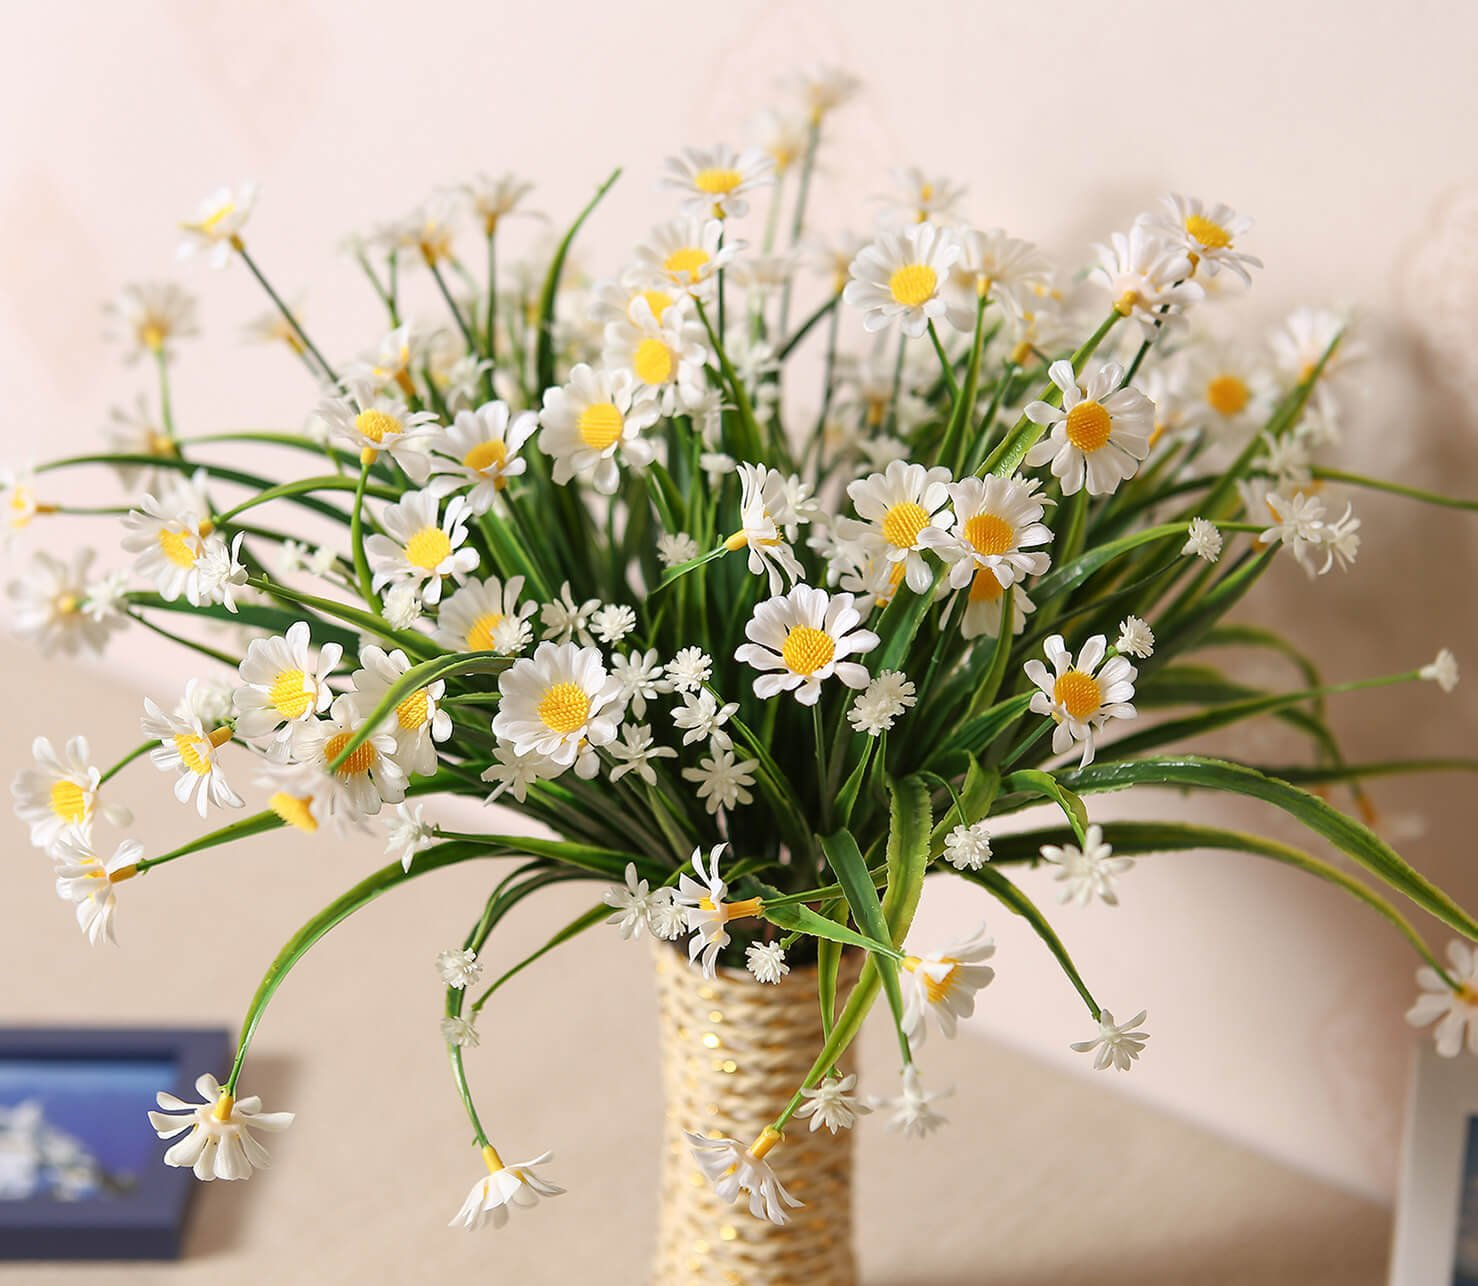 E-Hand Daisies Artificial Flowers Outdoor UV Resistant Daisy Fake Plant Wholesale Windowbox Faux Greenery Shrubs Simulation Plastic Bushes Indoor Hanging Planter DIY Wedding Balcony Decor - 4 PCS